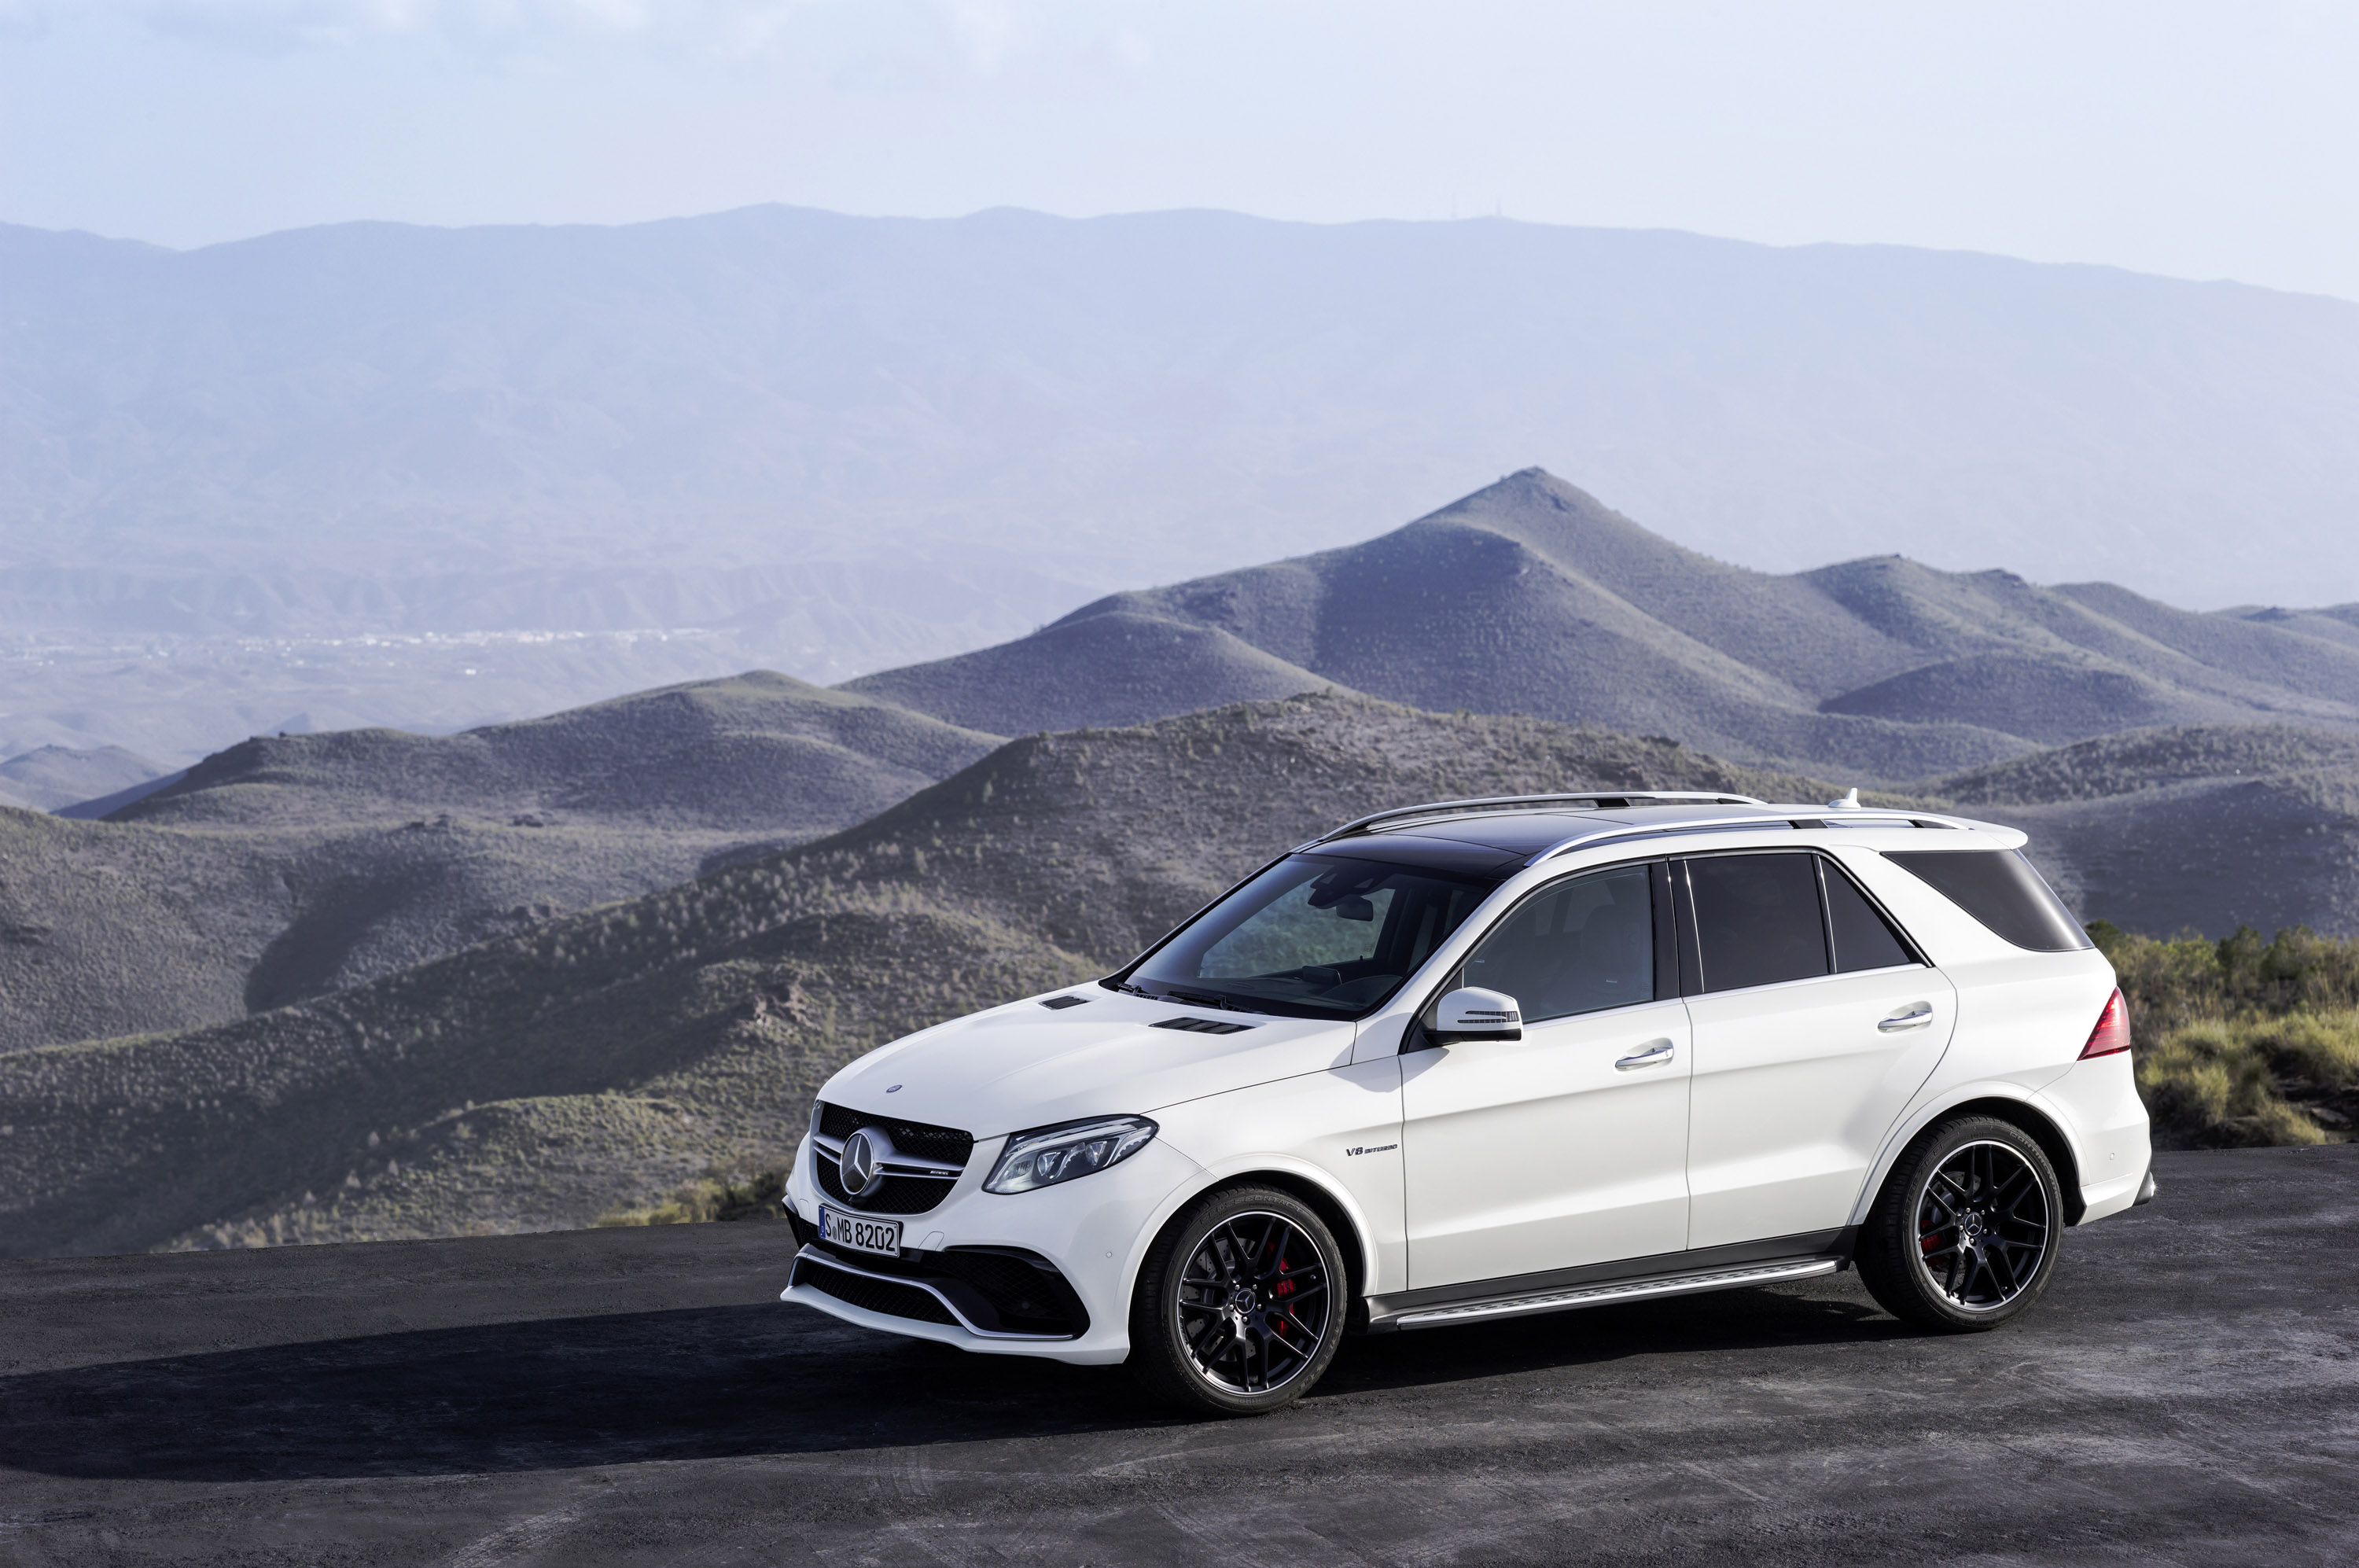 2016 mercedes benz gle 63 amg hd pictures for 2017 amg gle 63 mercedes benz